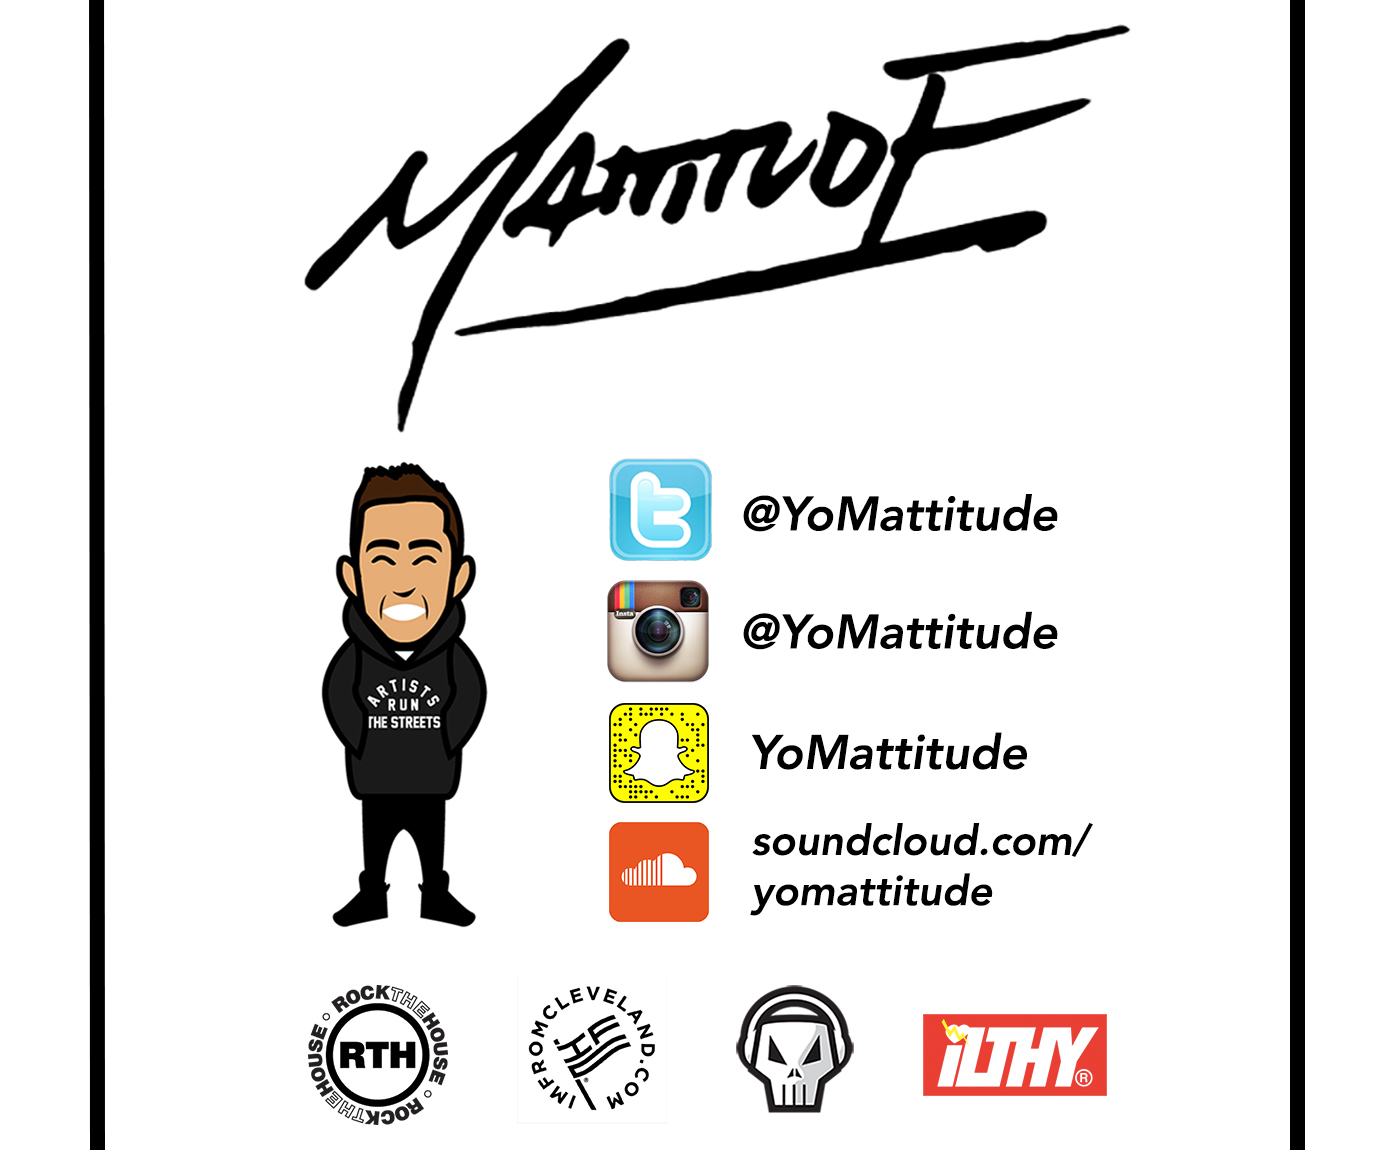 Mattitude DJs a wide variety of events both Freelance and through Rock The House Entertainment, as well as various other services including social media management, single editing, and mixtape hosting. Send a message at the right for more information on any of Mattitude's services or rates.